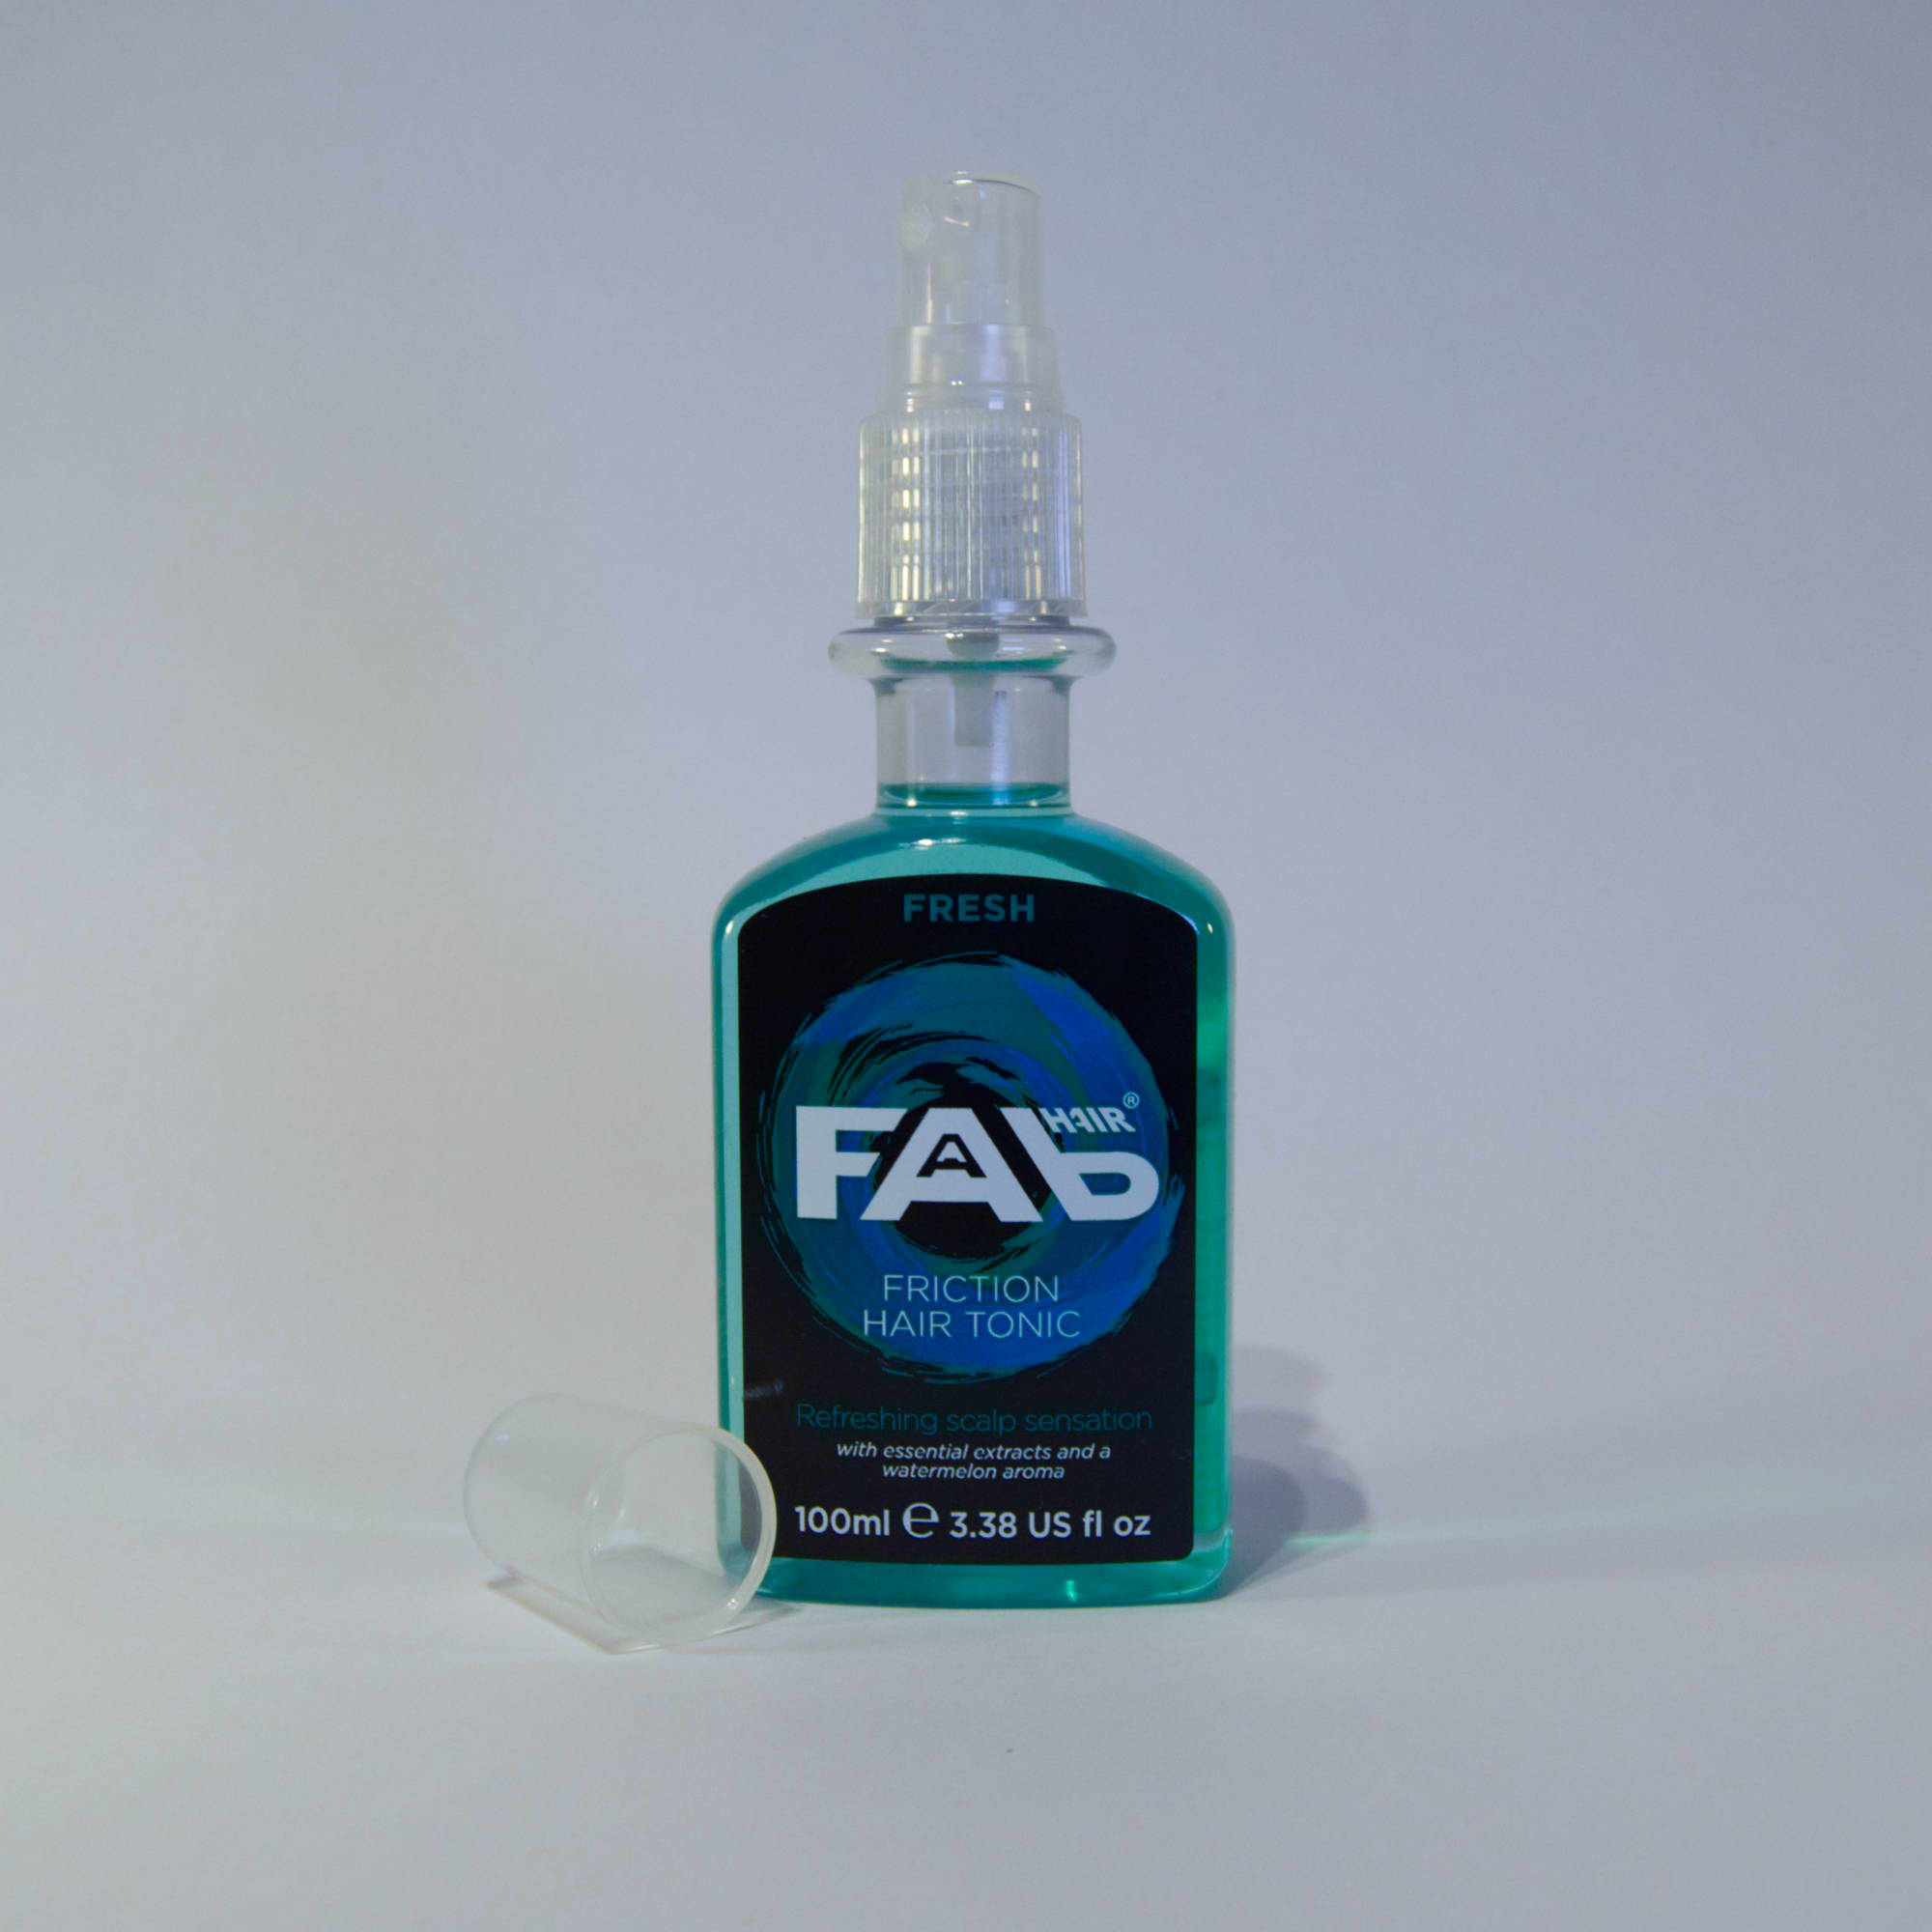 100ml bottle of Fresh flavoured FAB friction hair tonic with Spray Nozzle